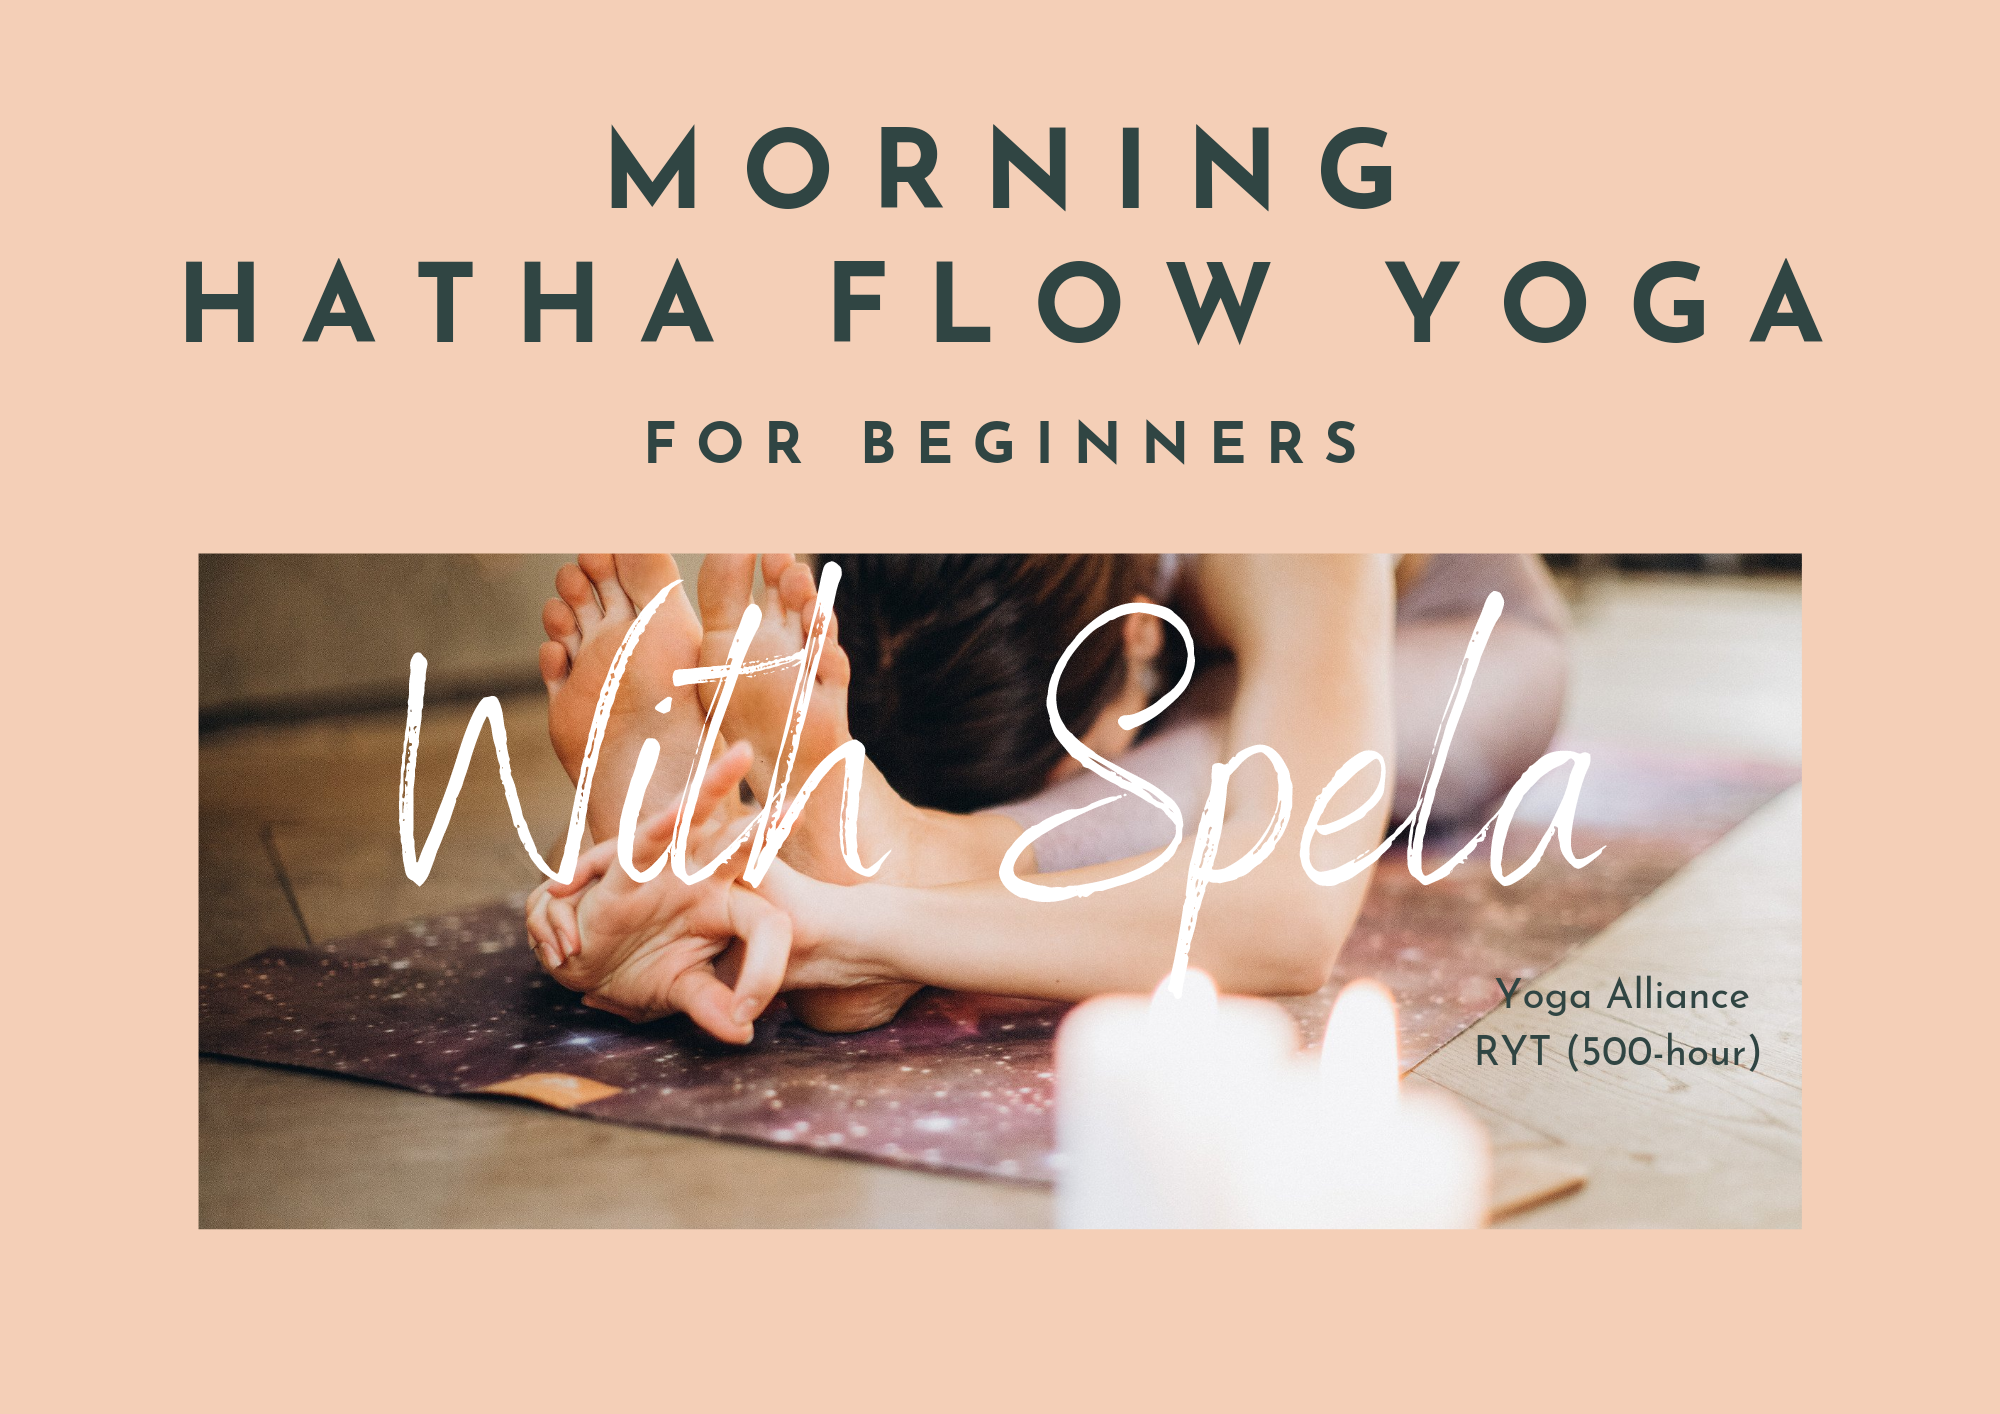 Morning Hatha Flow with Spela